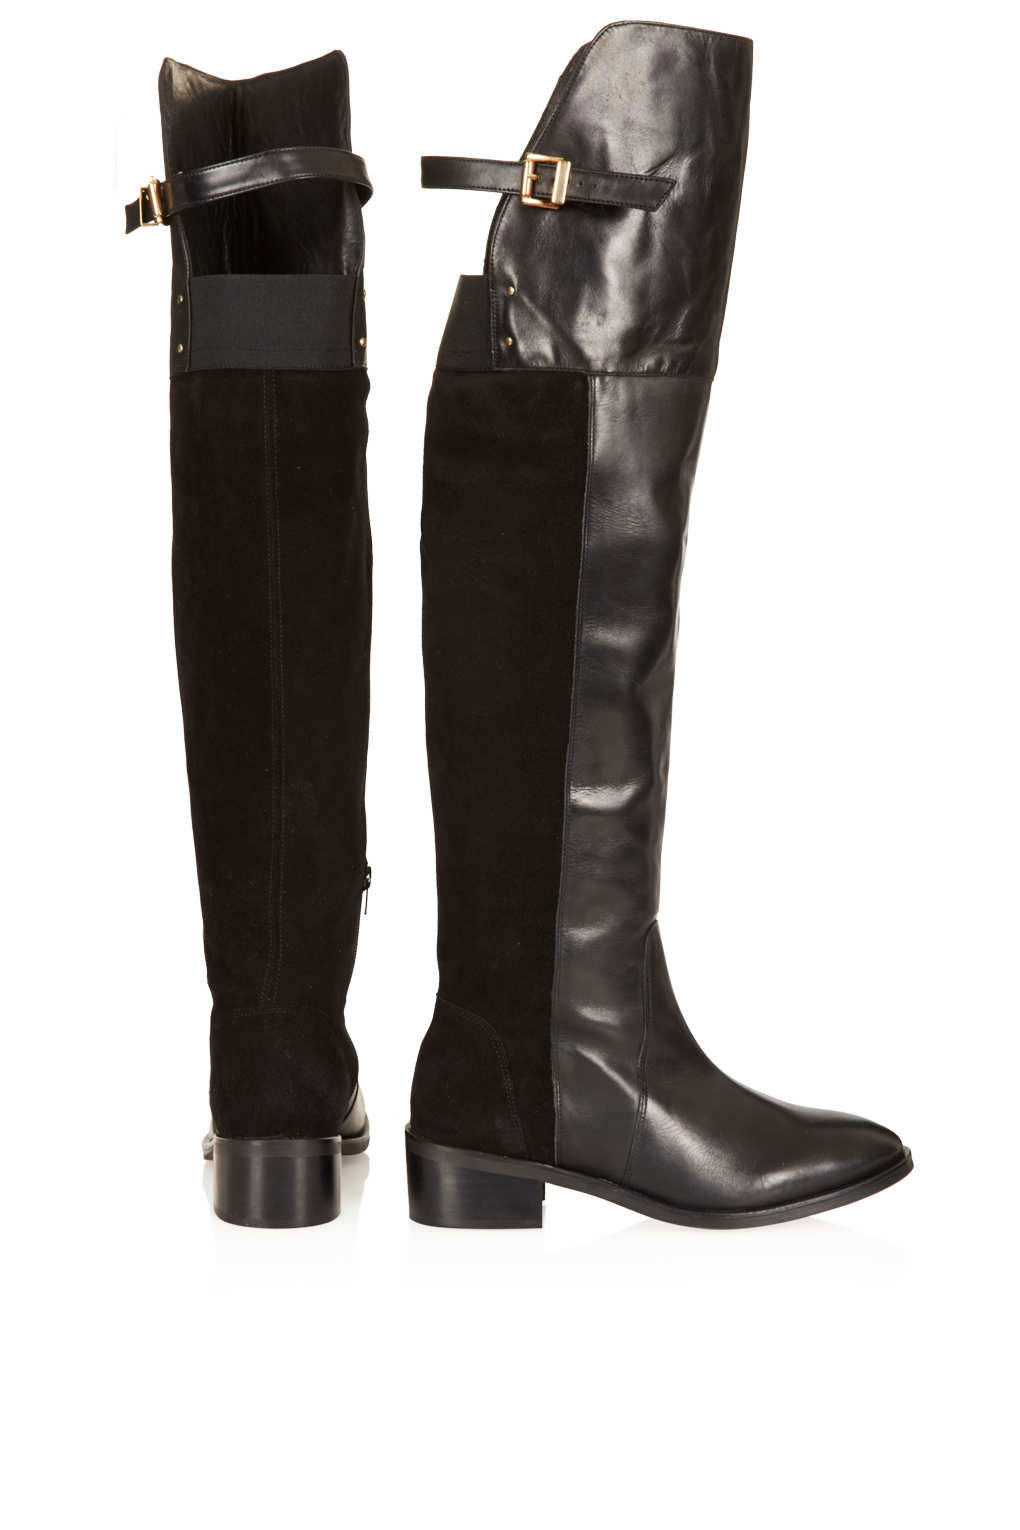 Best Over The Knee Boots - Best Boots For Fall and Winter